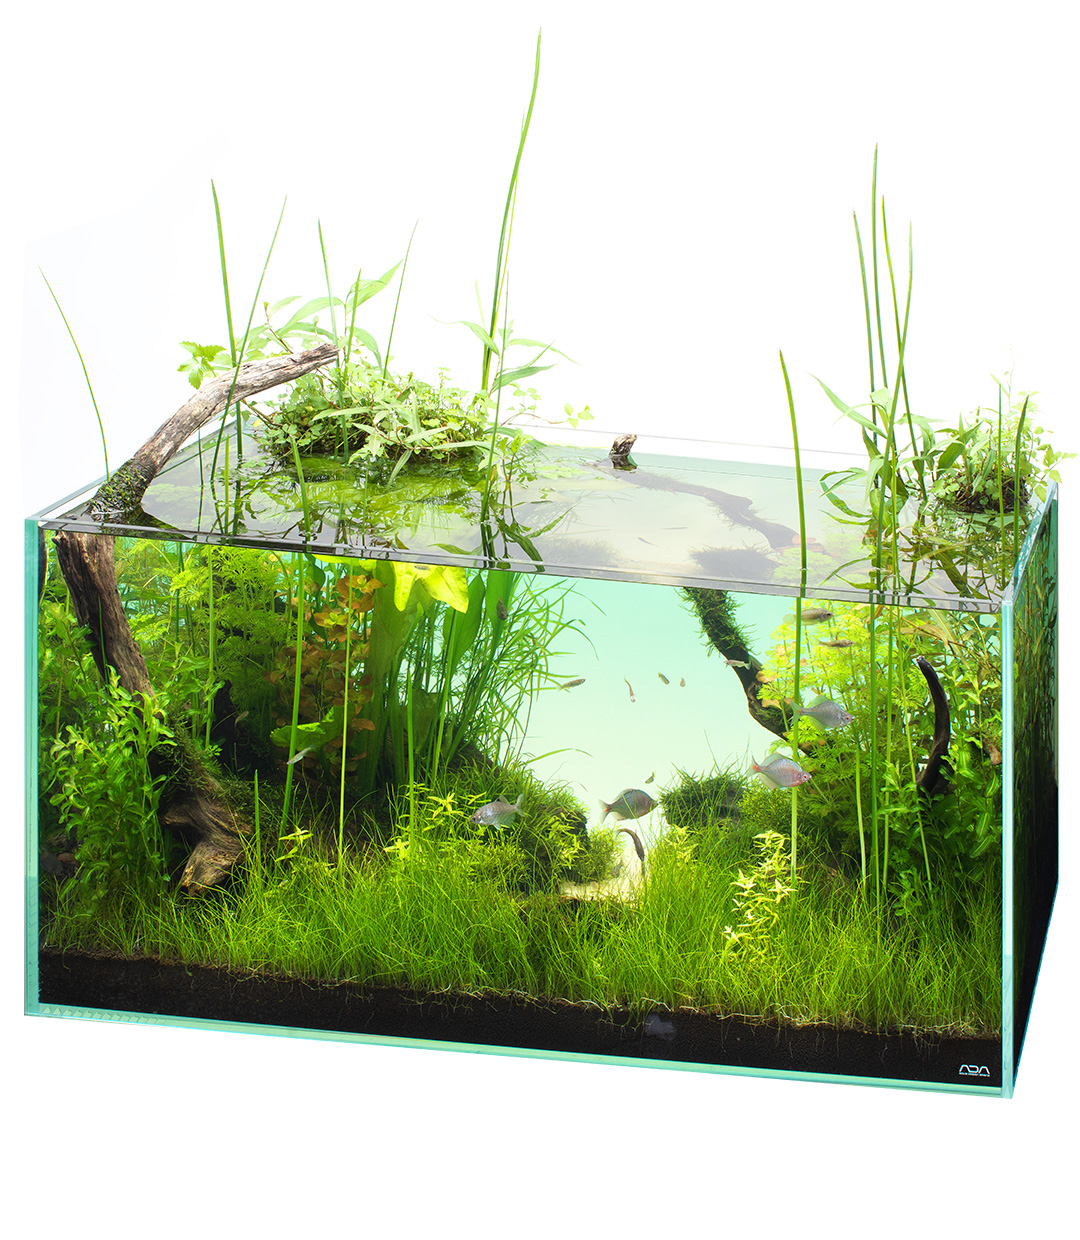 NATURE IN THE GLASS 'Reproduce the Lost Yoroigata – A Haven for Fish formed by Aquatic Plants – '